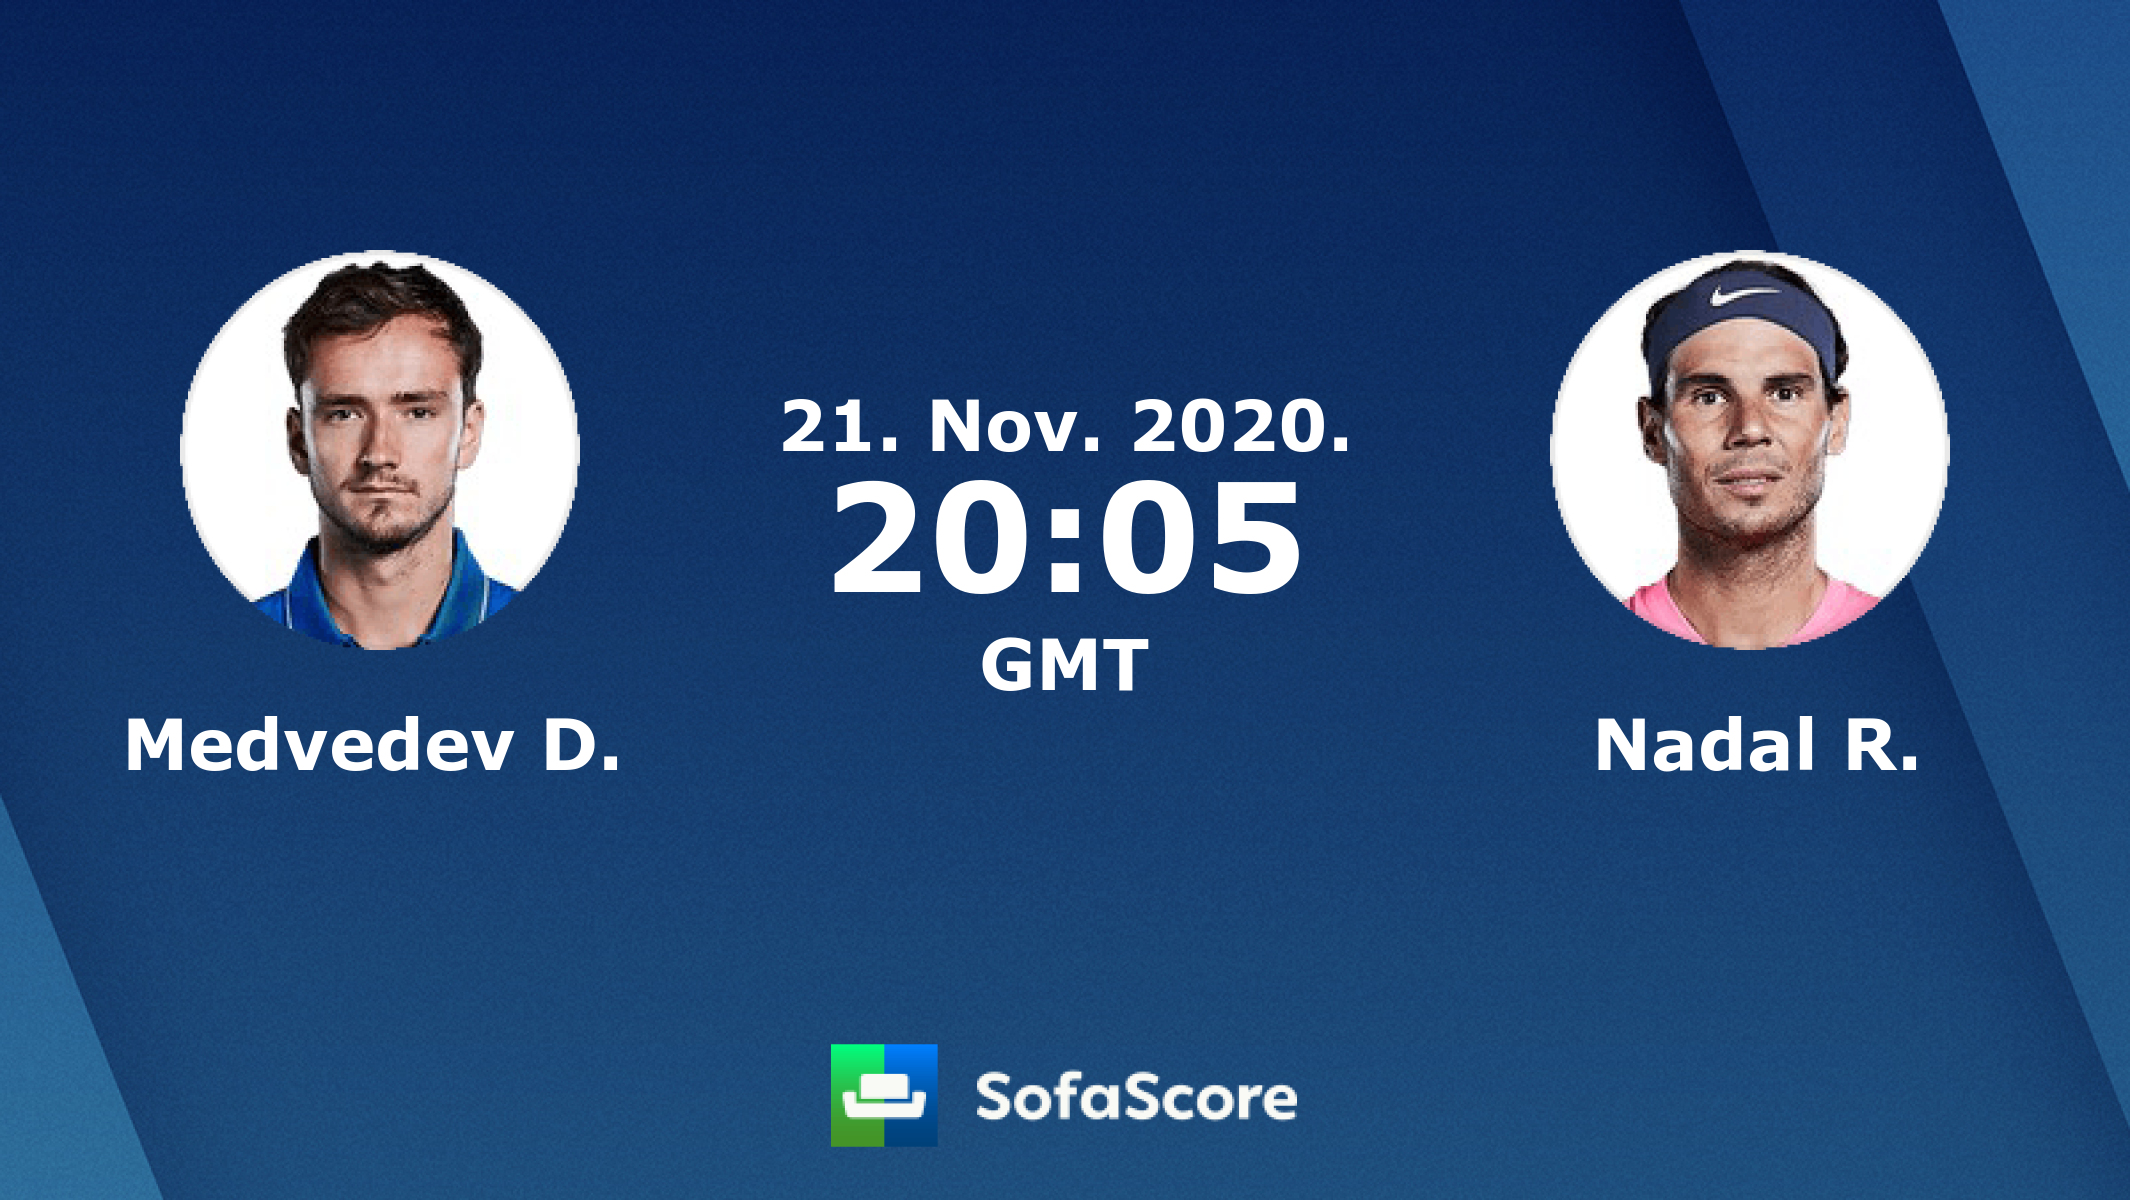 Medvedev D. Nadal R. live score, video stream and H2H results - SofaScore